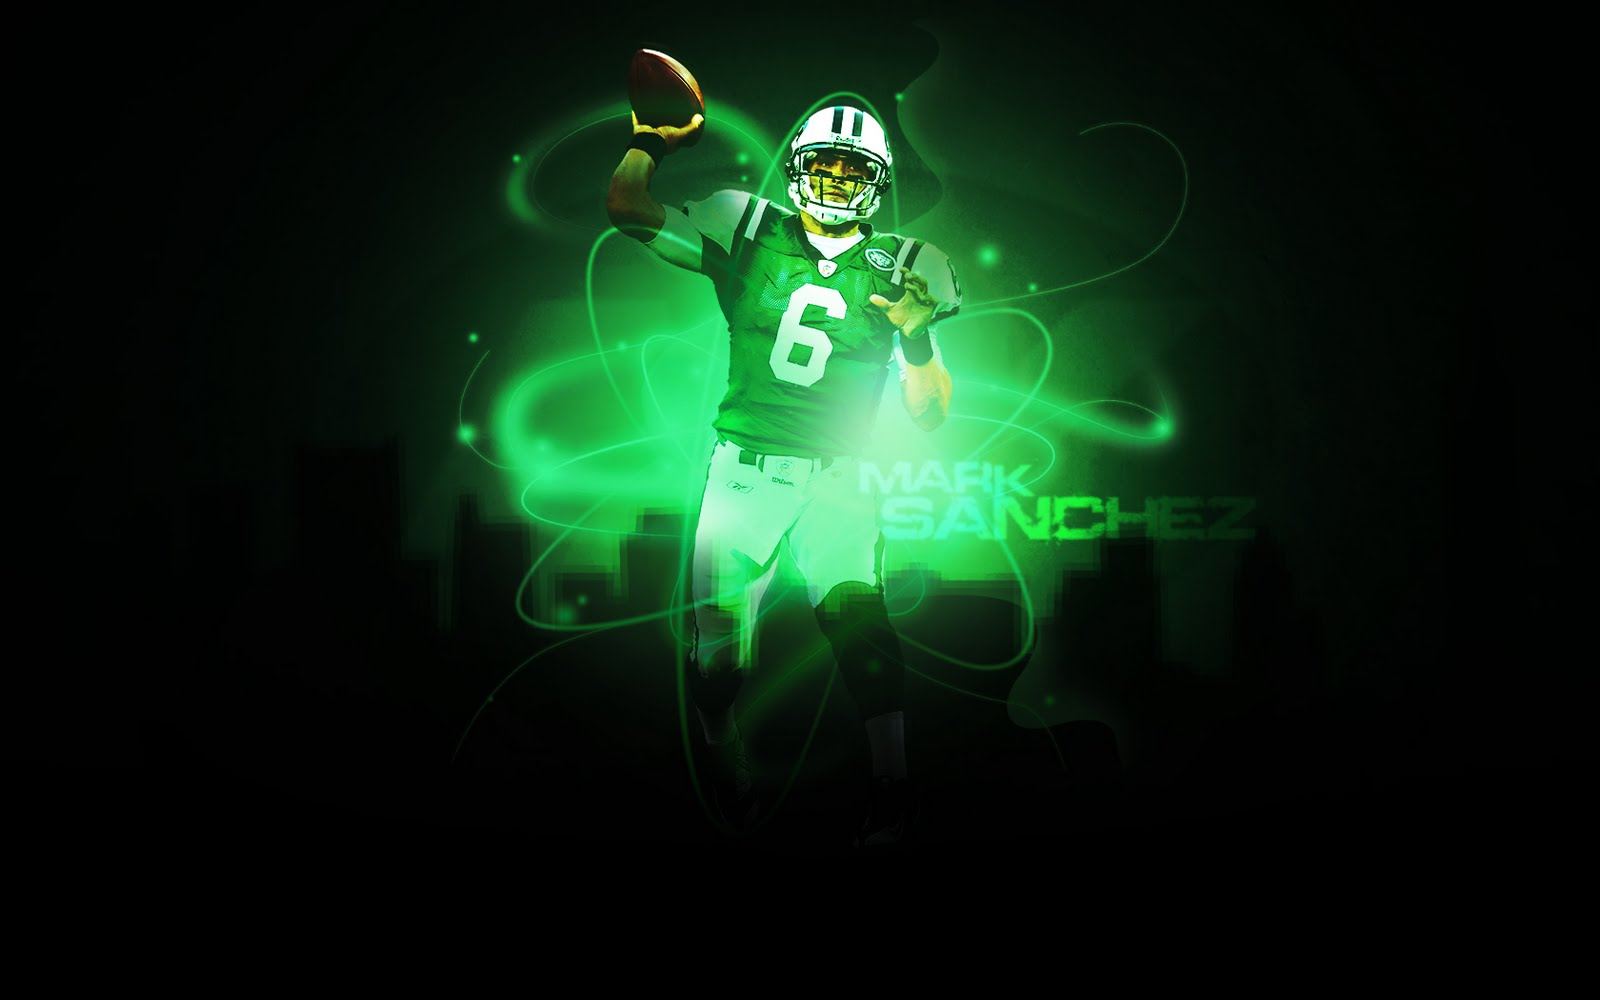 http://1.bp.blogspot.com/_SPY5-z18DBU/TTBBpp086RI/AAAAAAAAAJ4/F8BagksMDzM/s1600/mark_sanchez_wallpaper_new_york_jets_1680x1050.jpeg